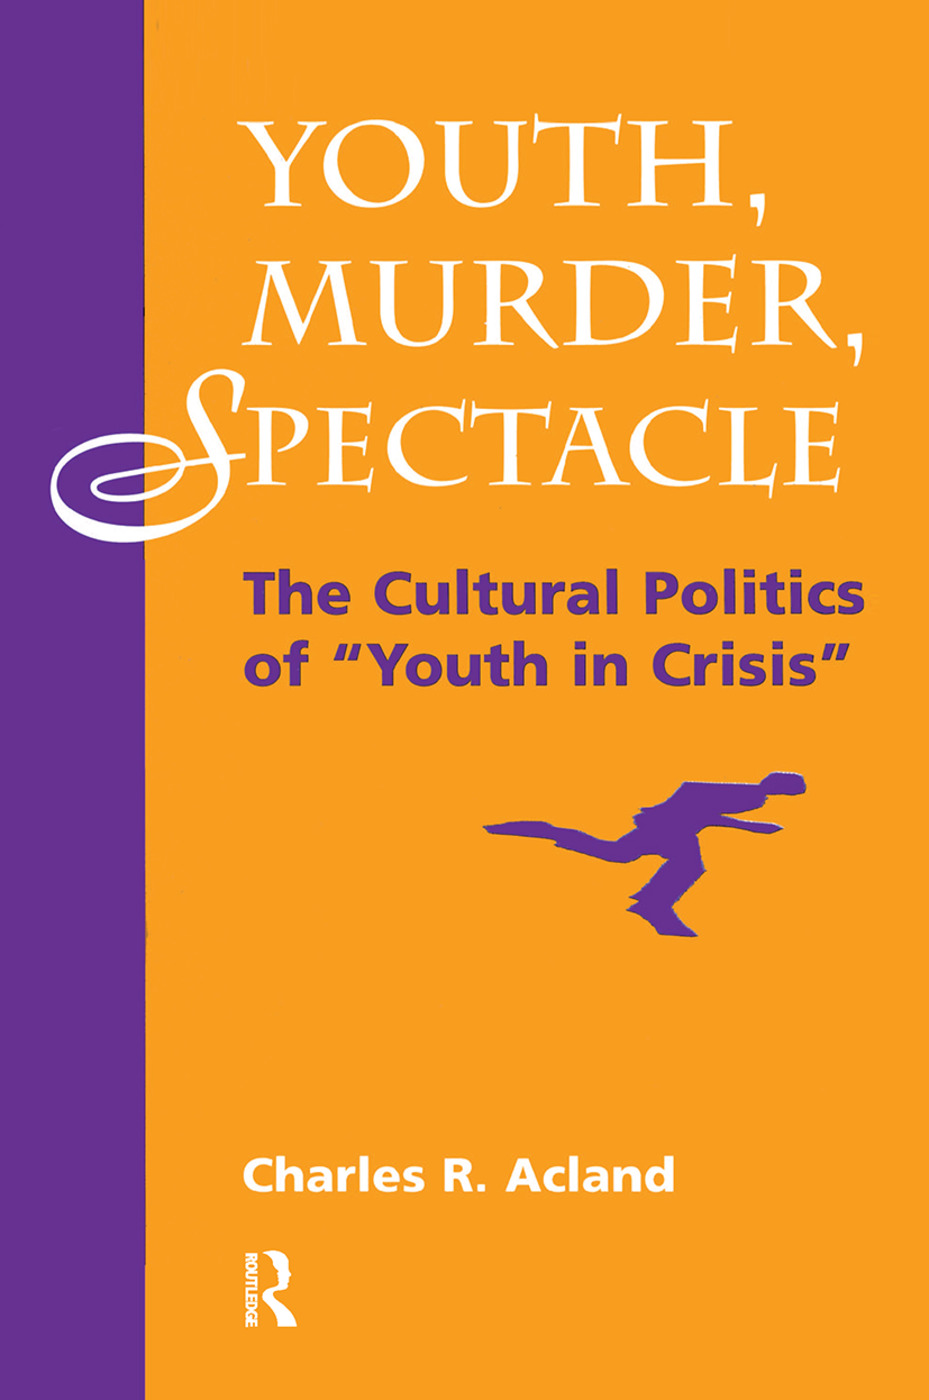 Youth, Murder, Spectacle: The Cultural Politics Of